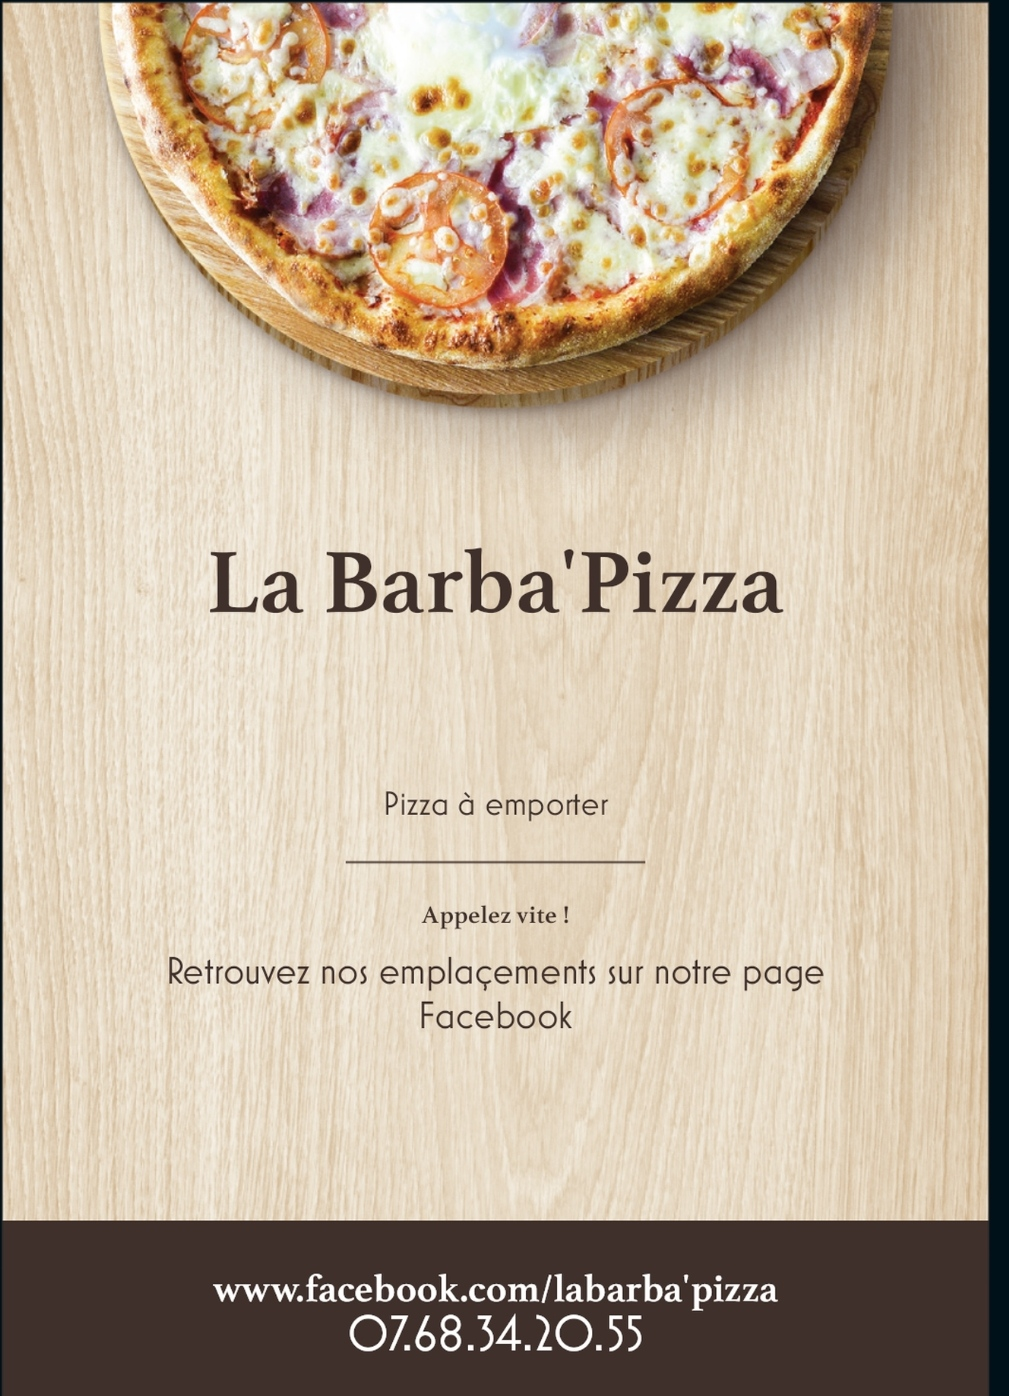 Pizzeria La Barba'pizza